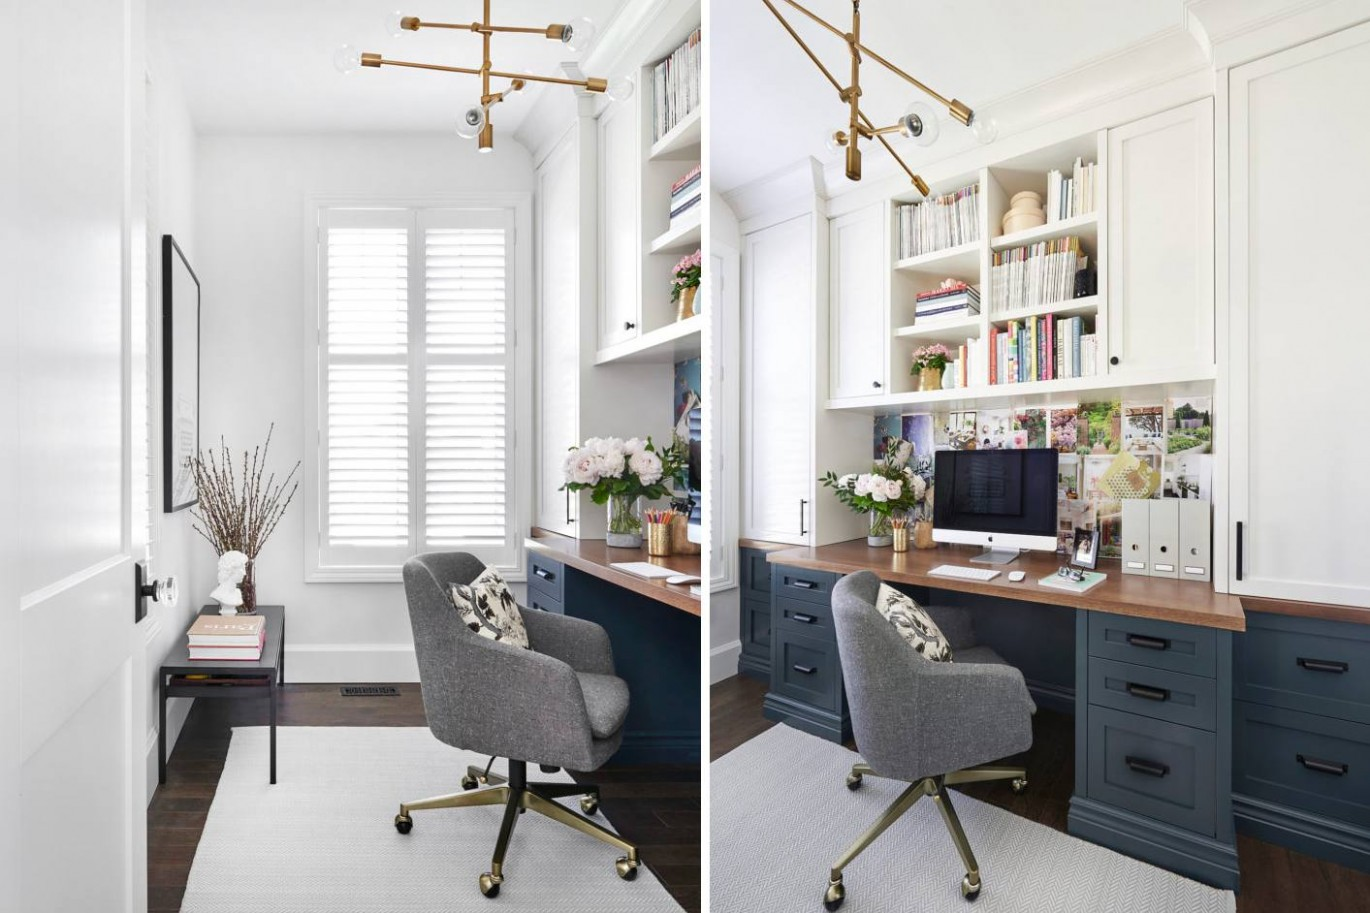 Small Home Office Ideas That Are Surprisingly Stylish - Home Office Ideas Pictures 10X10 Room